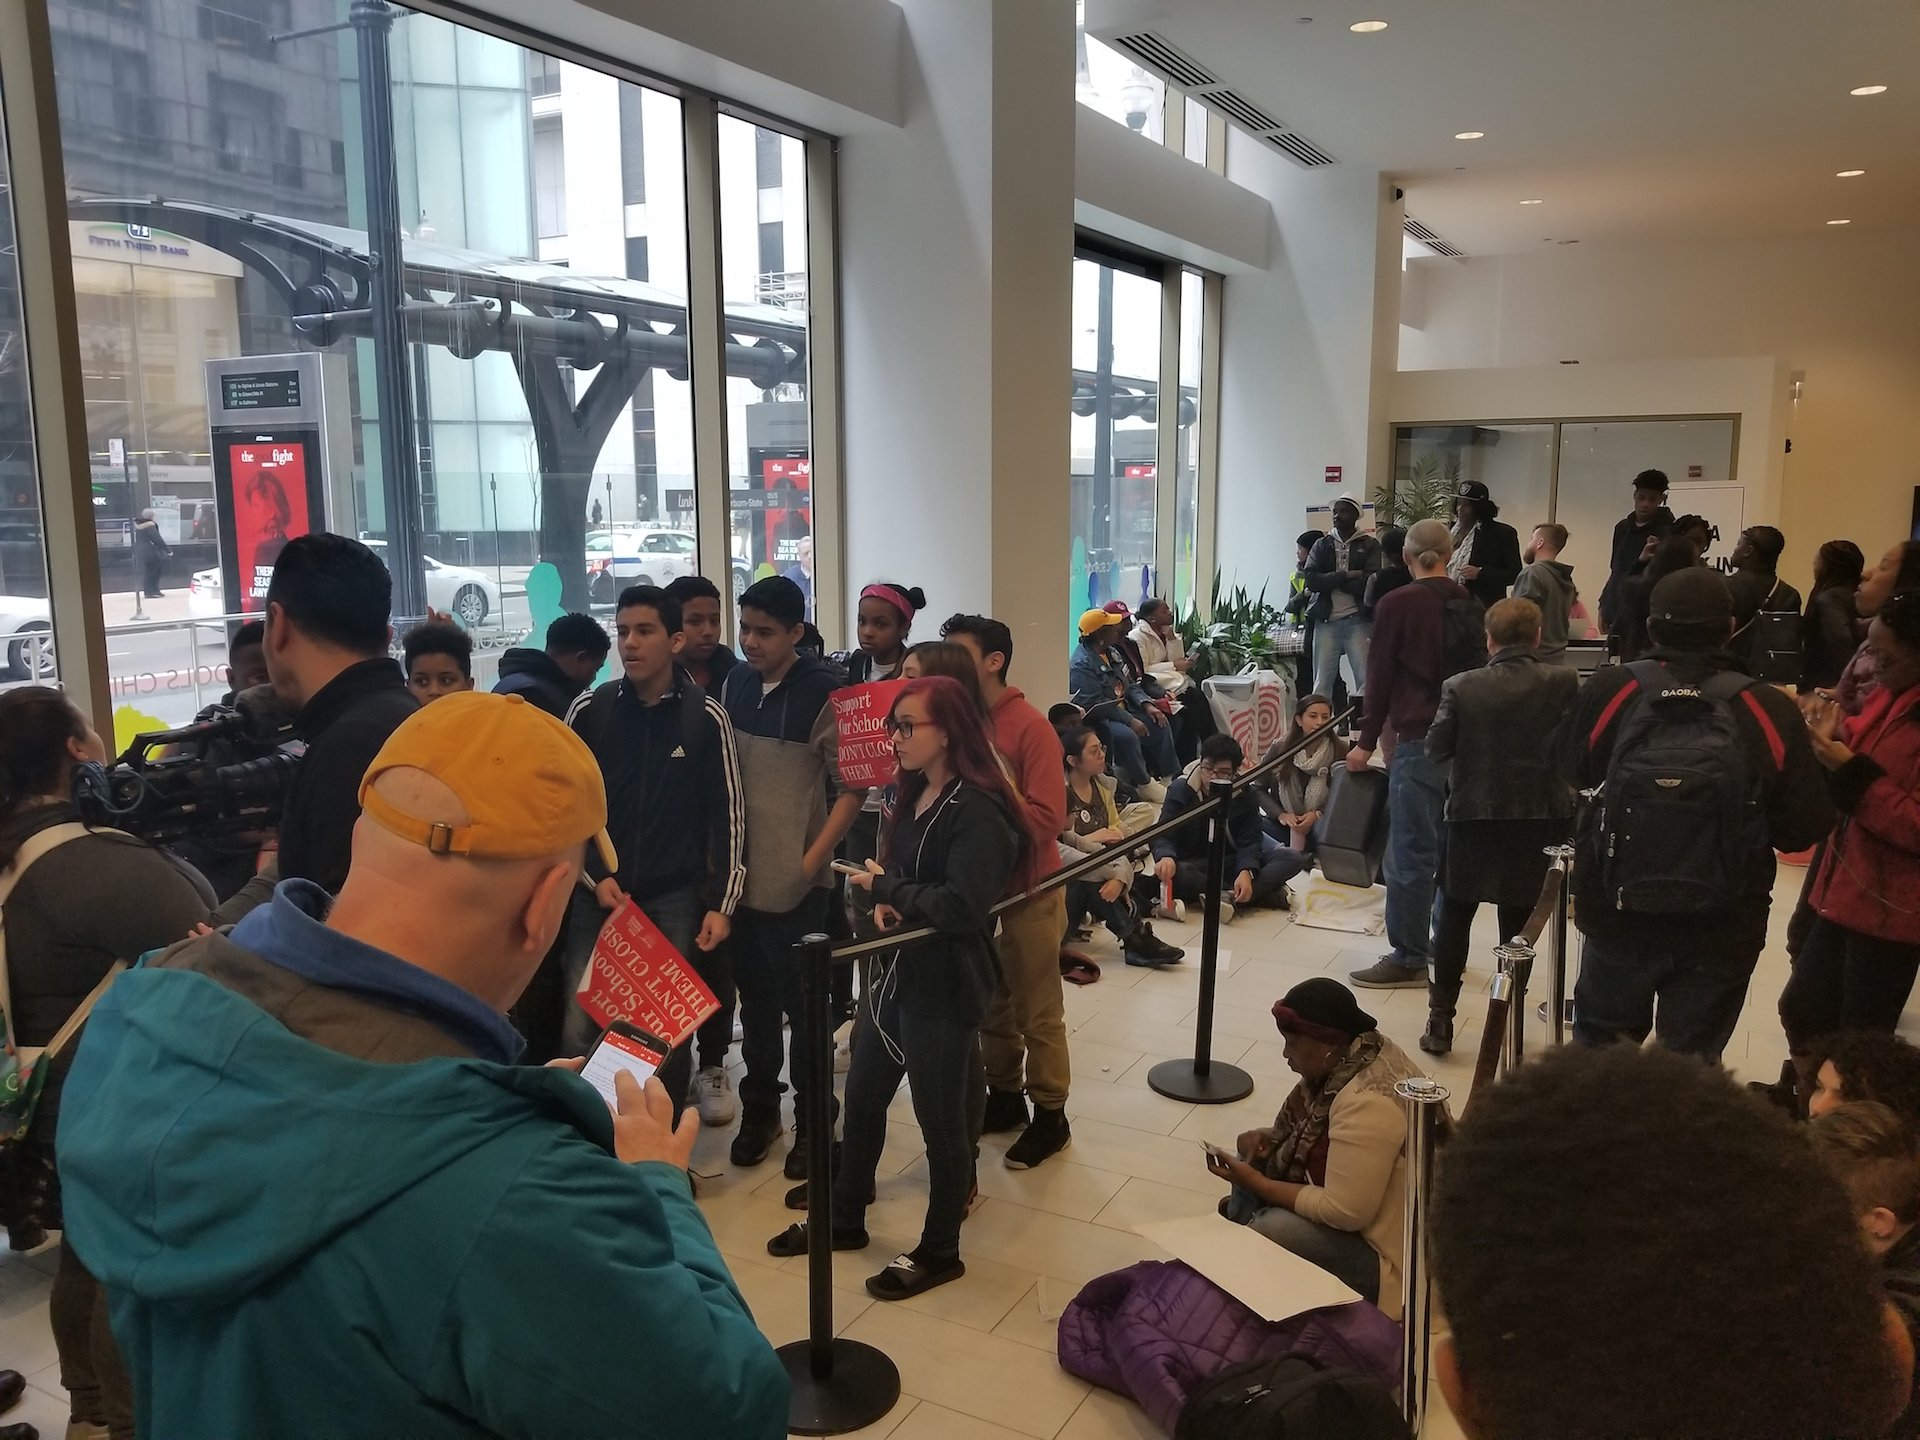 Students from the four Englewood schools packed the lobby at CPS Central Office during Wednesday's board meeting. (Matt Masterson / Chicago Tonight)